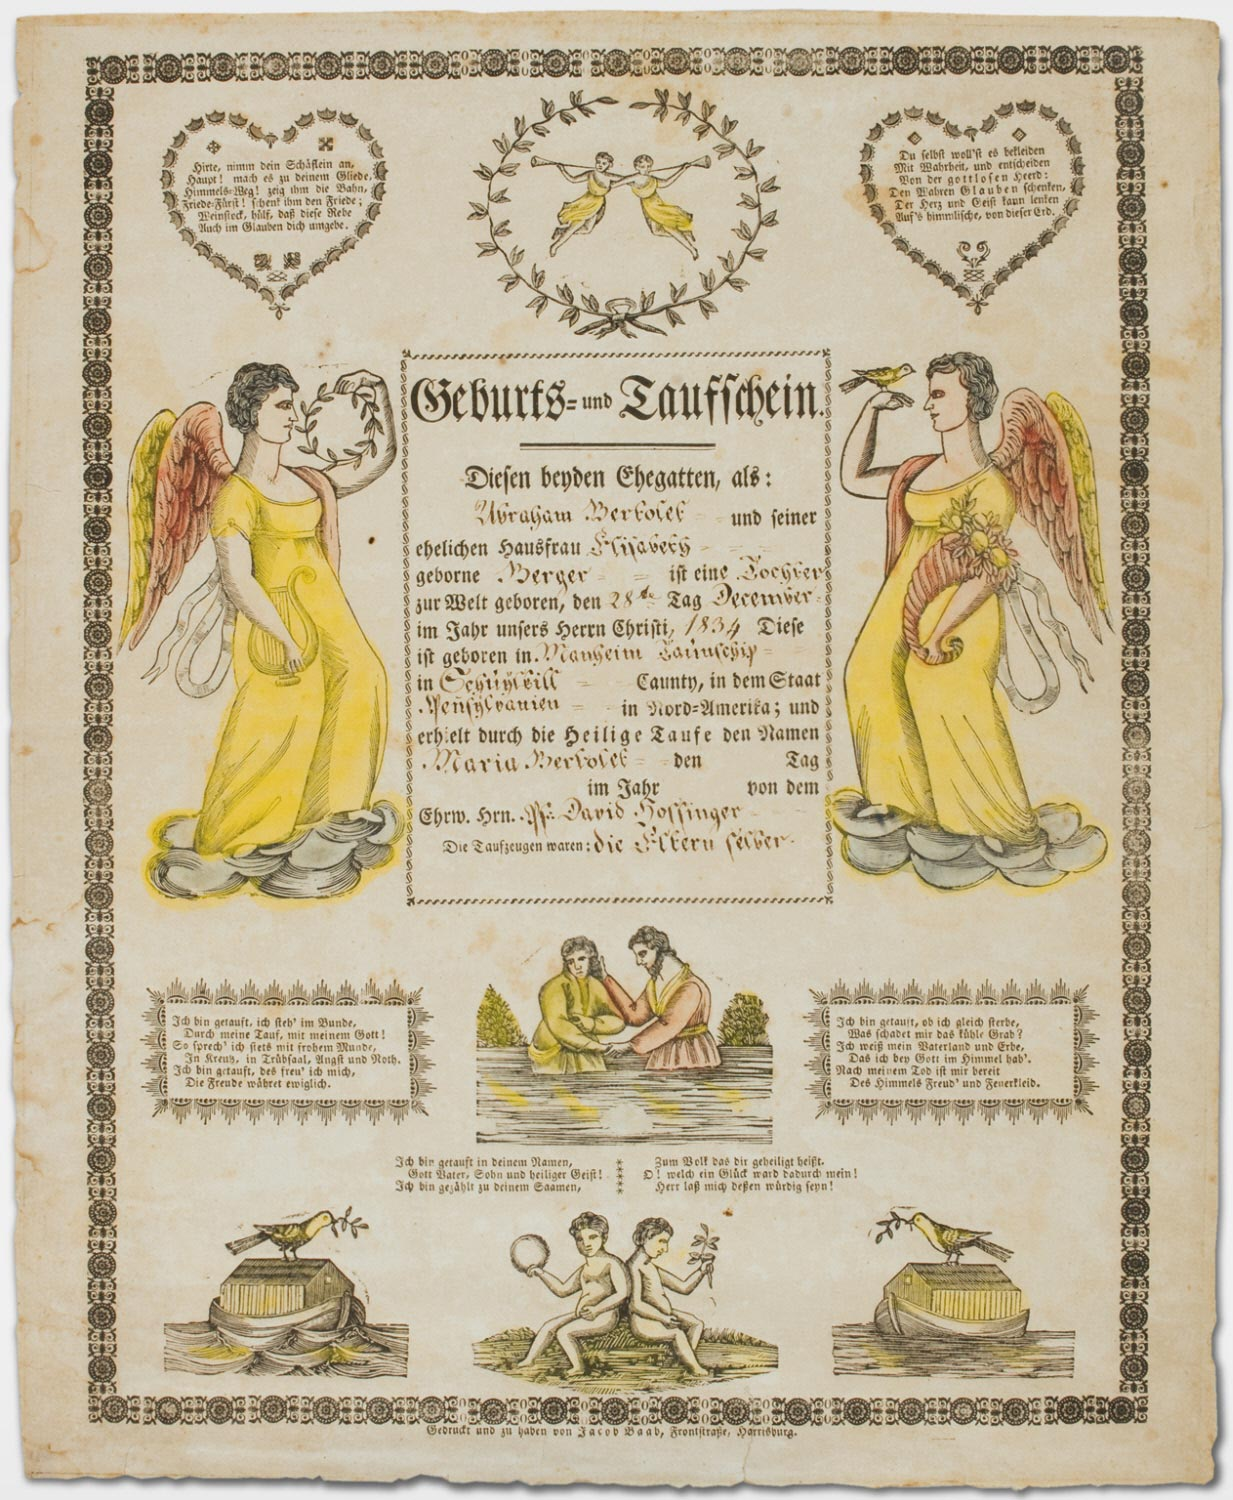 Birth and Baptismal Certificate for Maria Bertolet (born December 28, 1834)